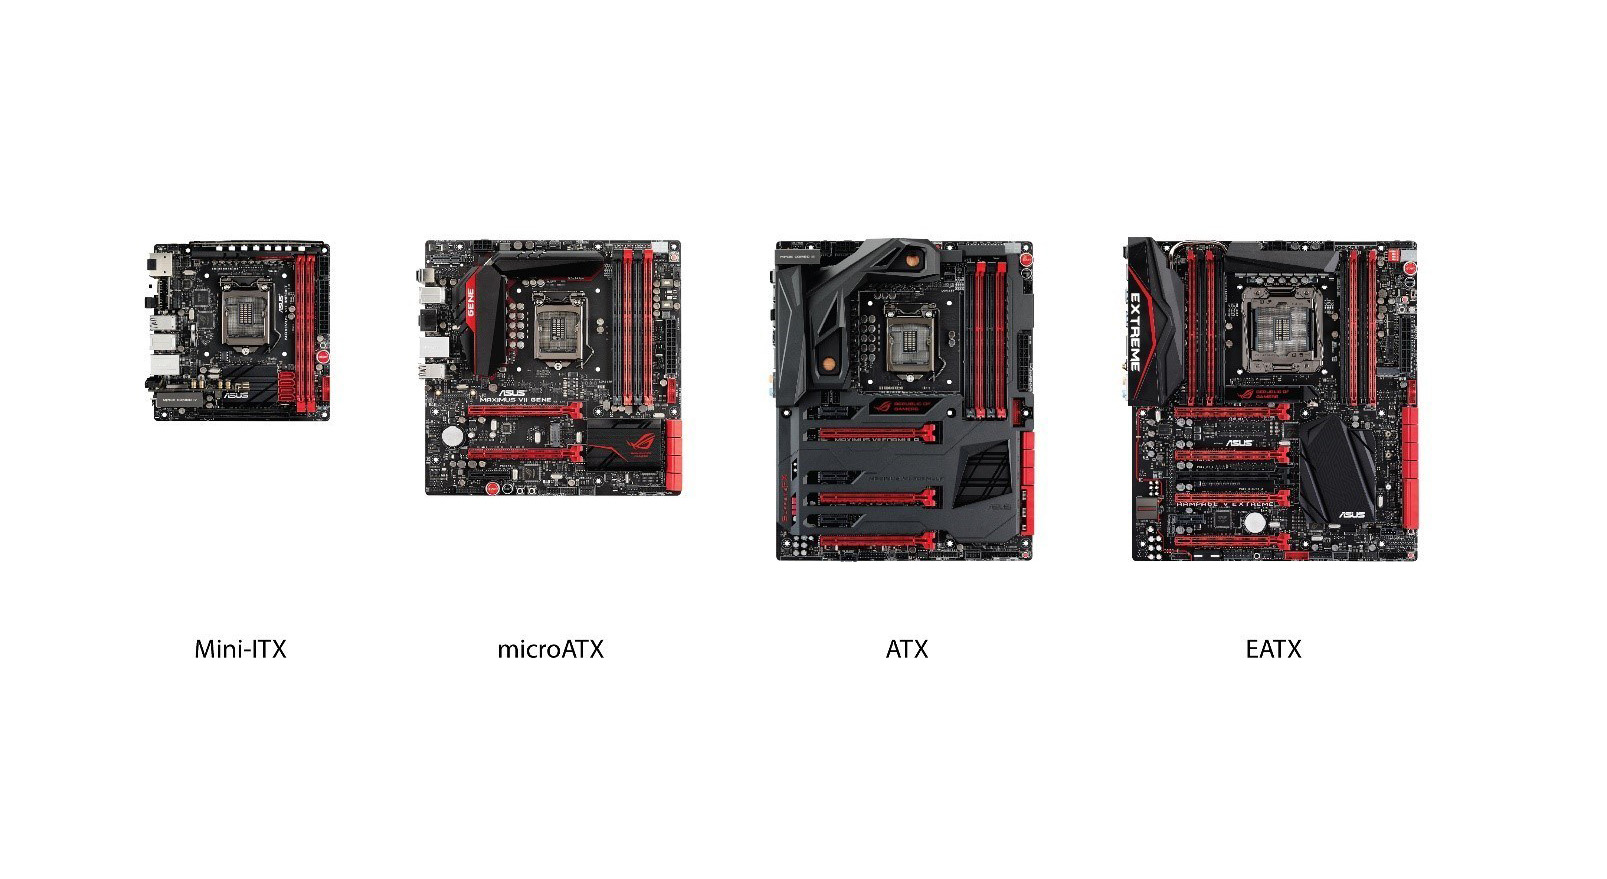 Motherboard Sizes